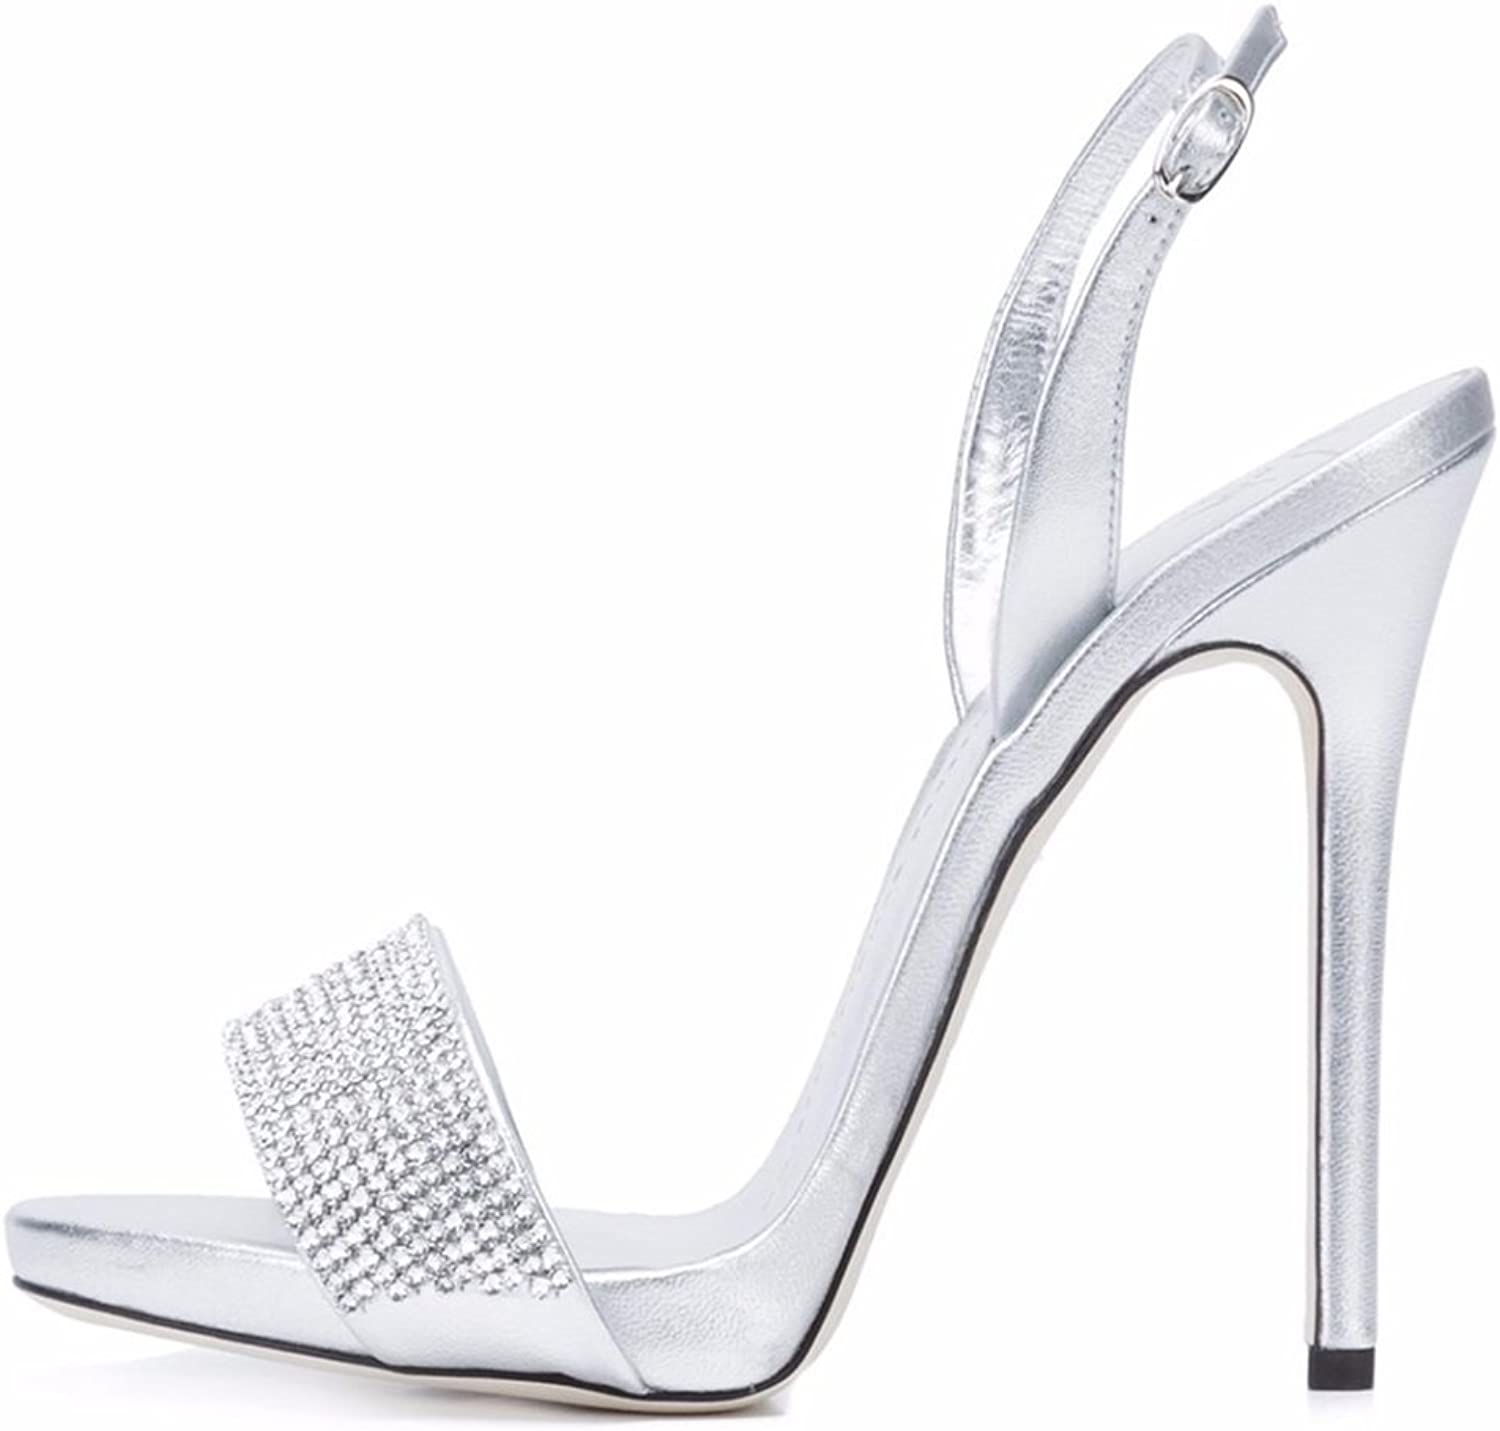 Women's High-Heeled Rhinestone Inlay Sandals Patent Leather Stiletto shoes Party Everyday Wear(Heel Height  12-13cm)